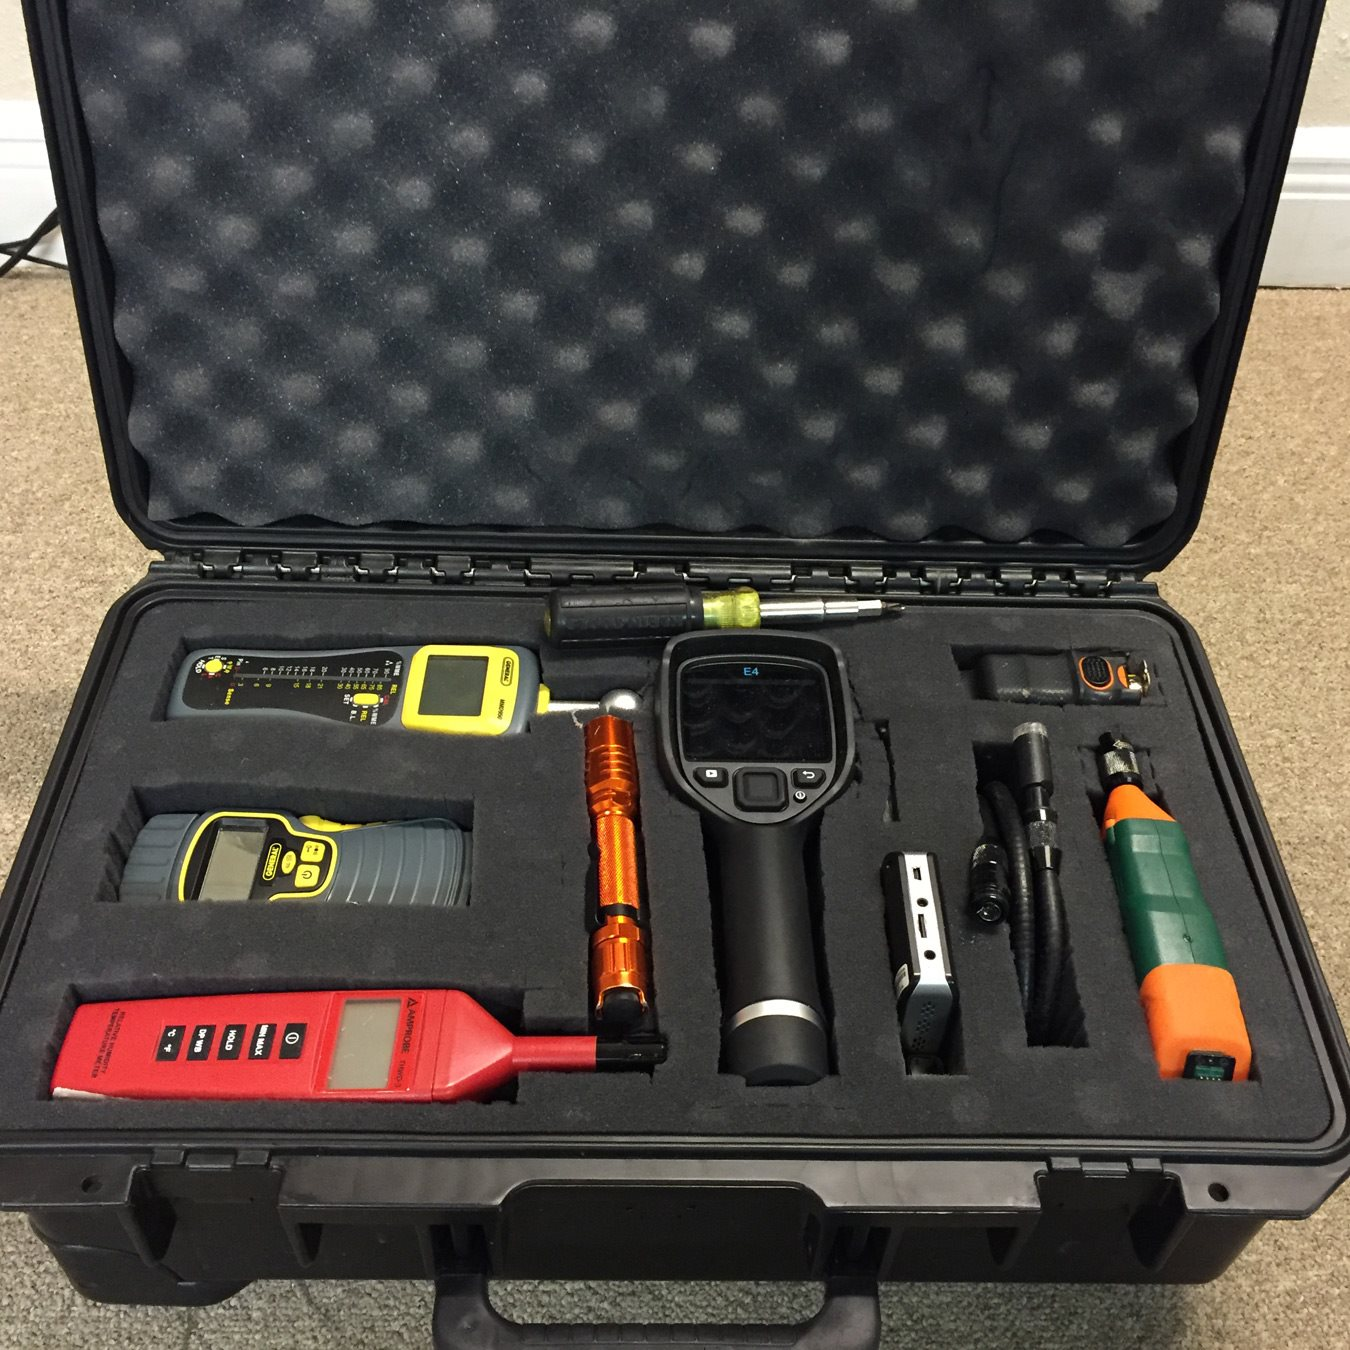 Mold Assessment Toolbox  with tools